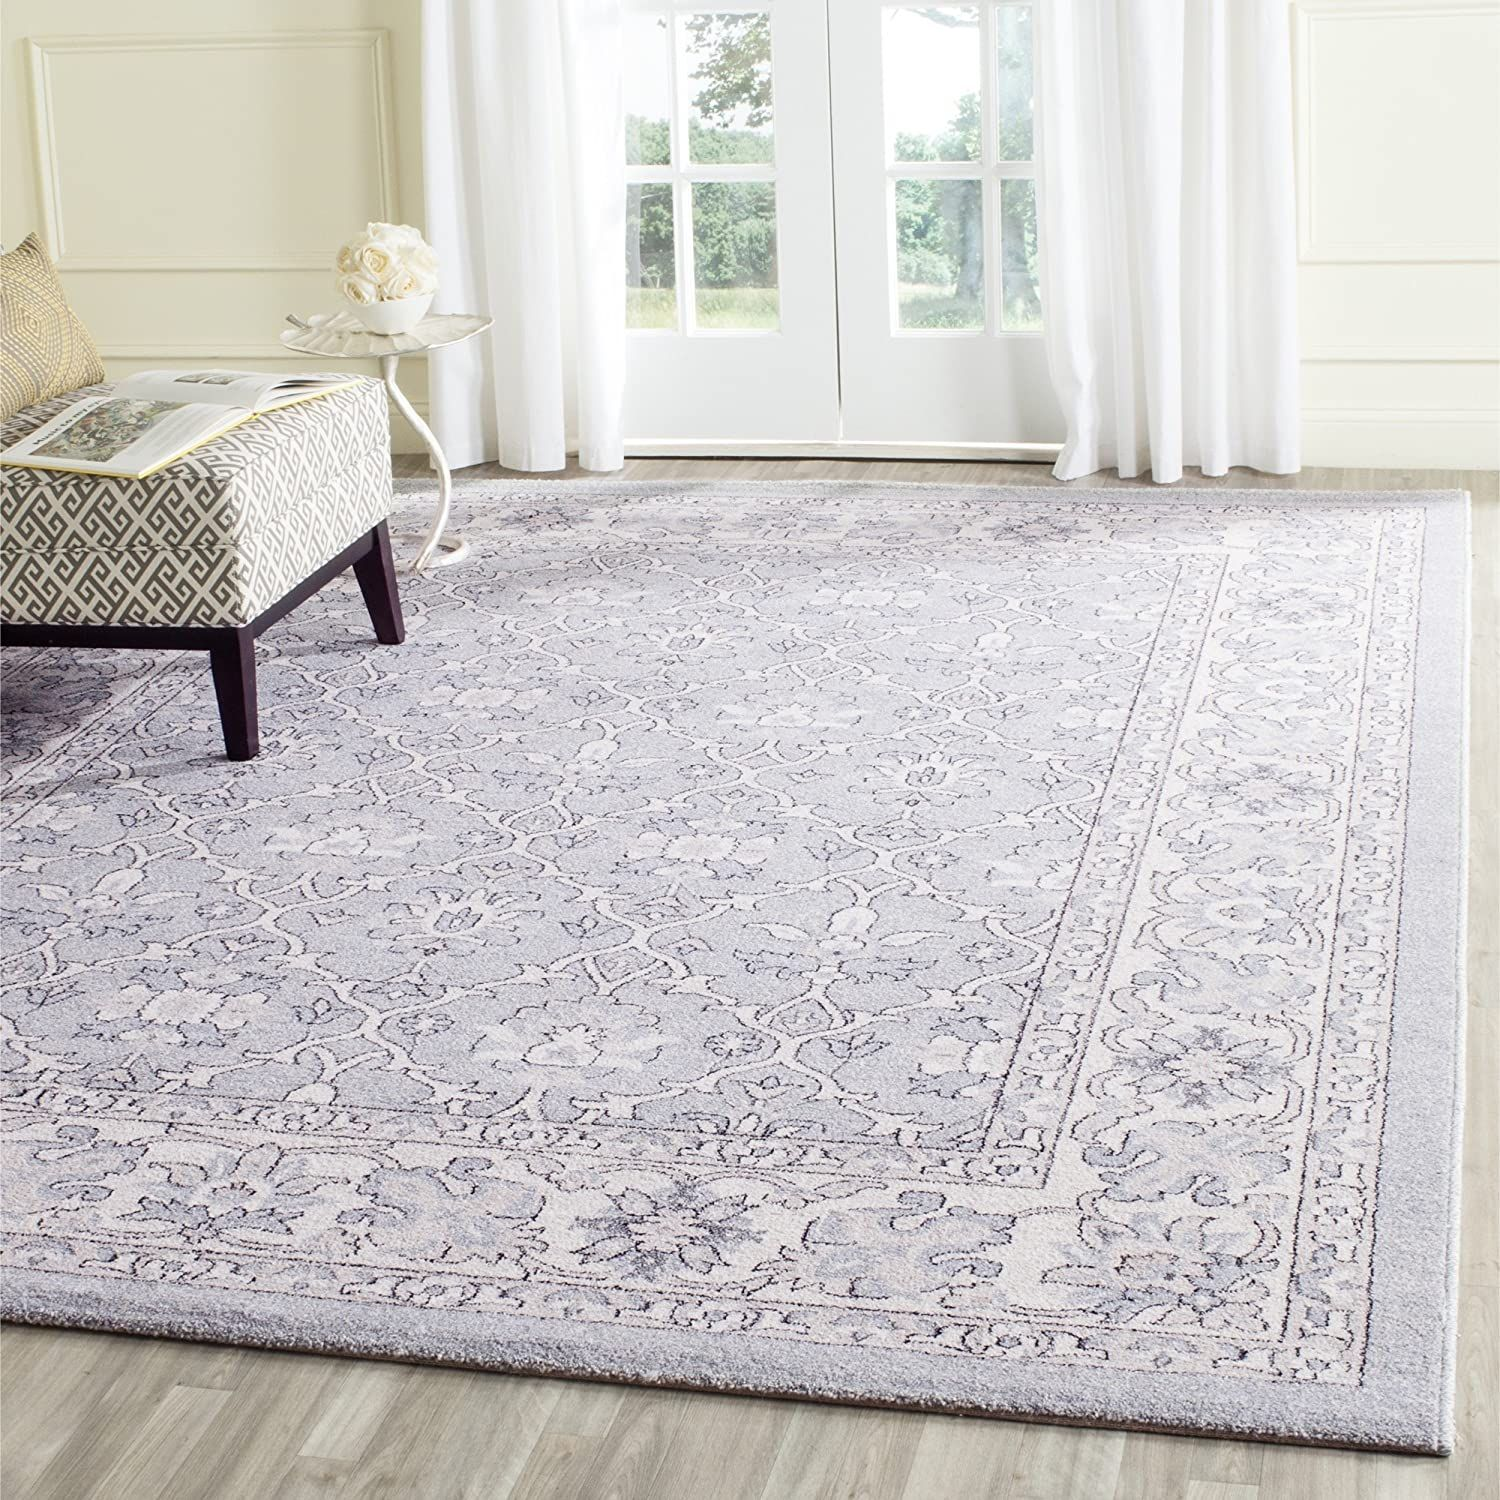 Safavieh Carmel Collection Car276c Vintage Oriental Light Blue And Ivory Area Rug 9 X 12 Home Kitchen In 2020 Area Rugs Lavender Area Rug Traditional Area Rugs